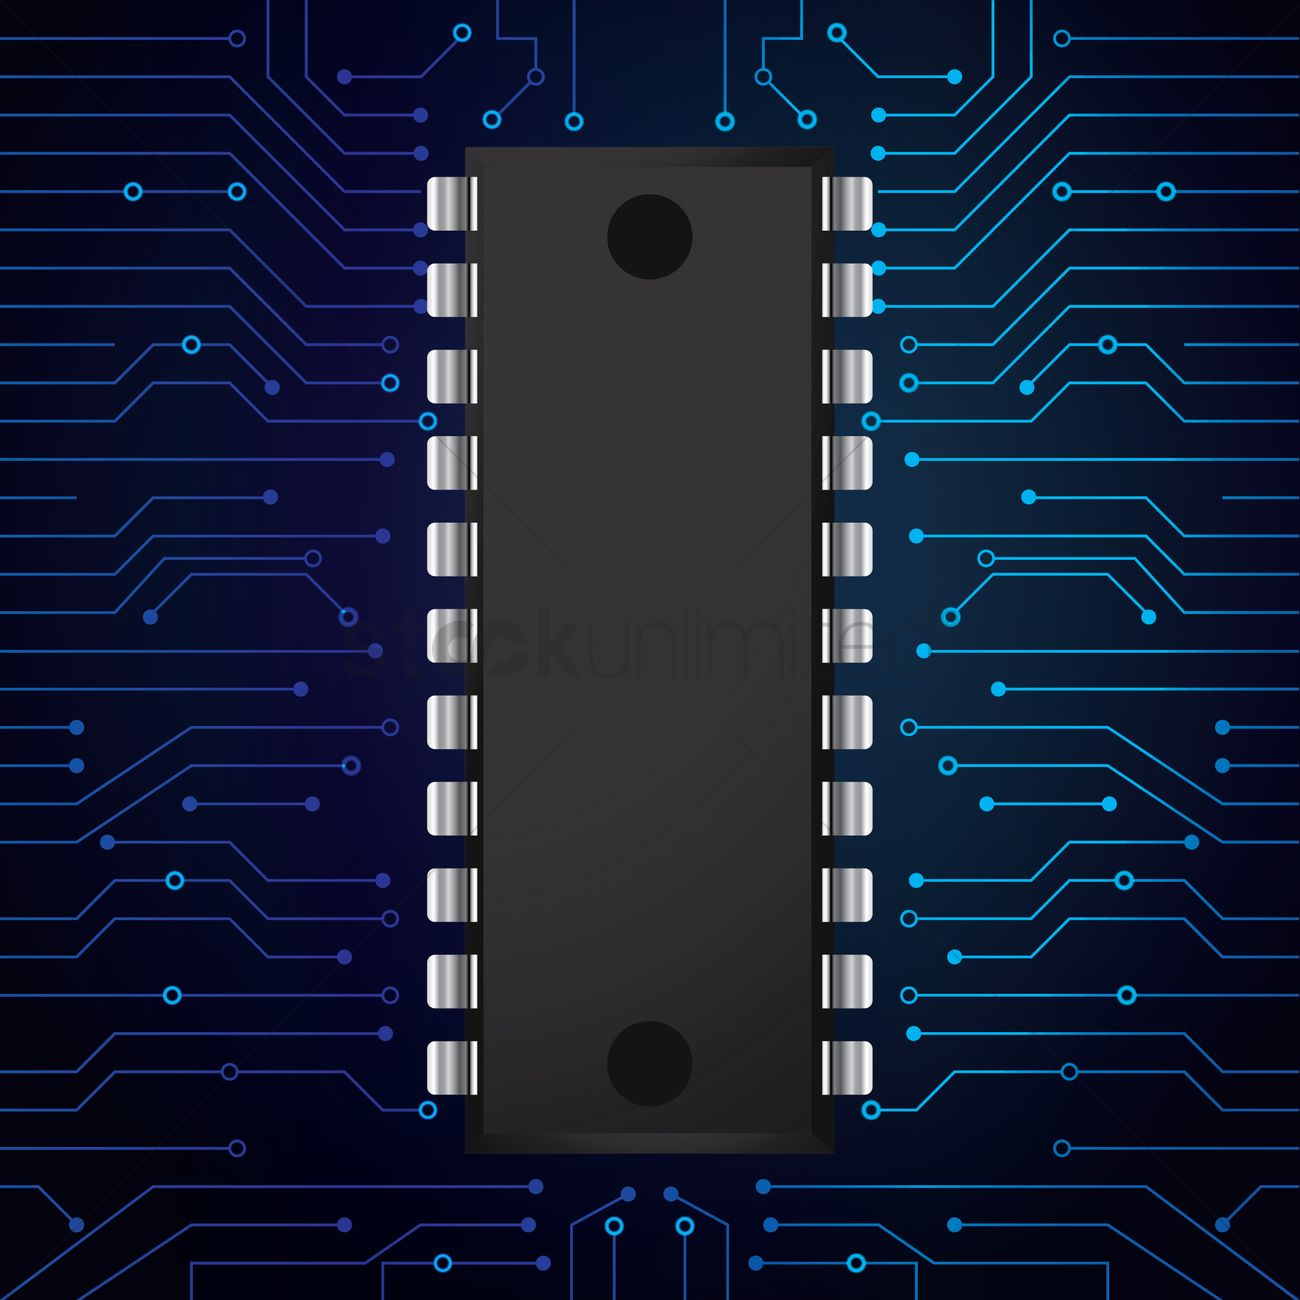 Circuit Pattern Wallpaper Evil Robot Board Black And Blue Green Picture Frame By Robyriker Ic On Vector Image 1807581 Stockunlimited